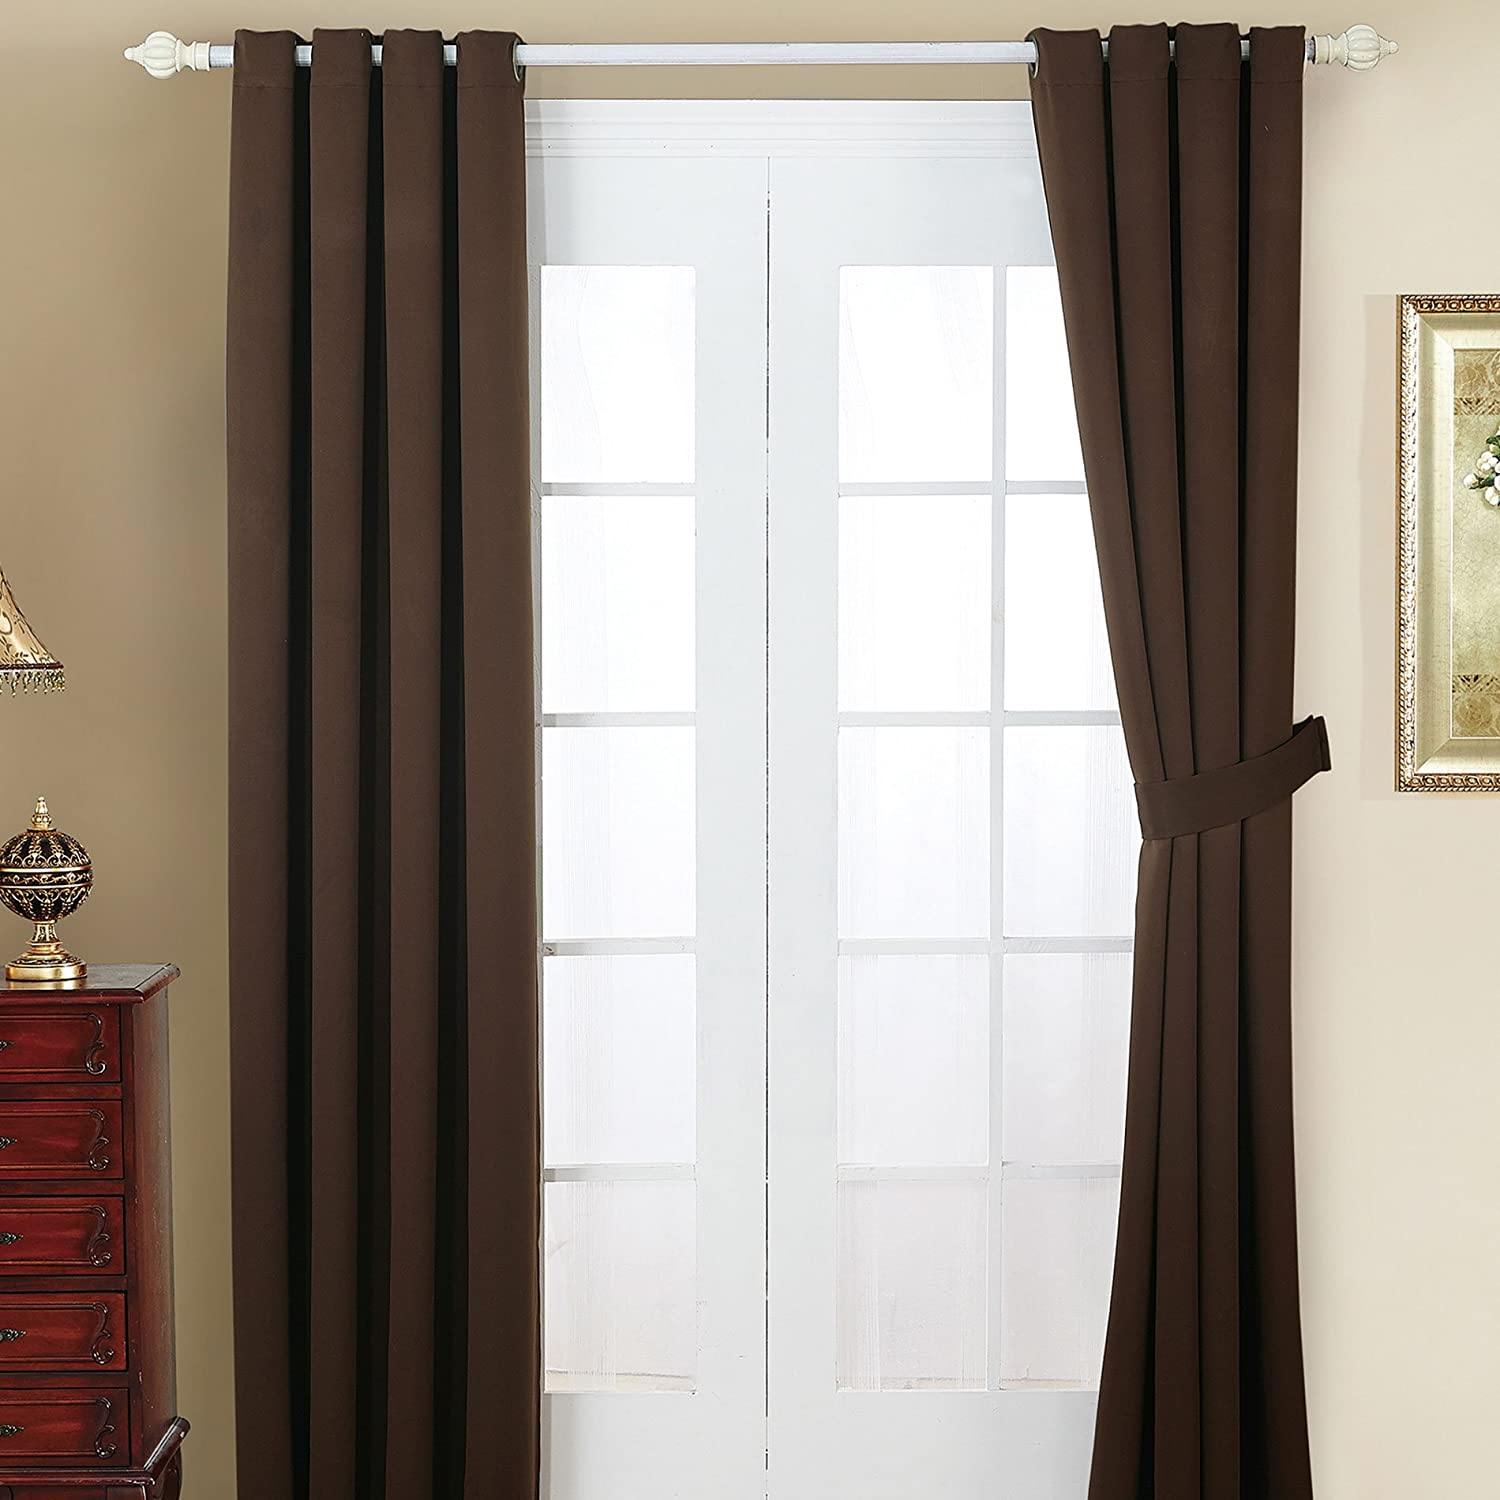 Home Soft Things Serenta 4 Piece Grommet Darkening Thermal Insulated Blackout Window Panel Curtain Set, 2 Curtains and 2 Back Ties, 54